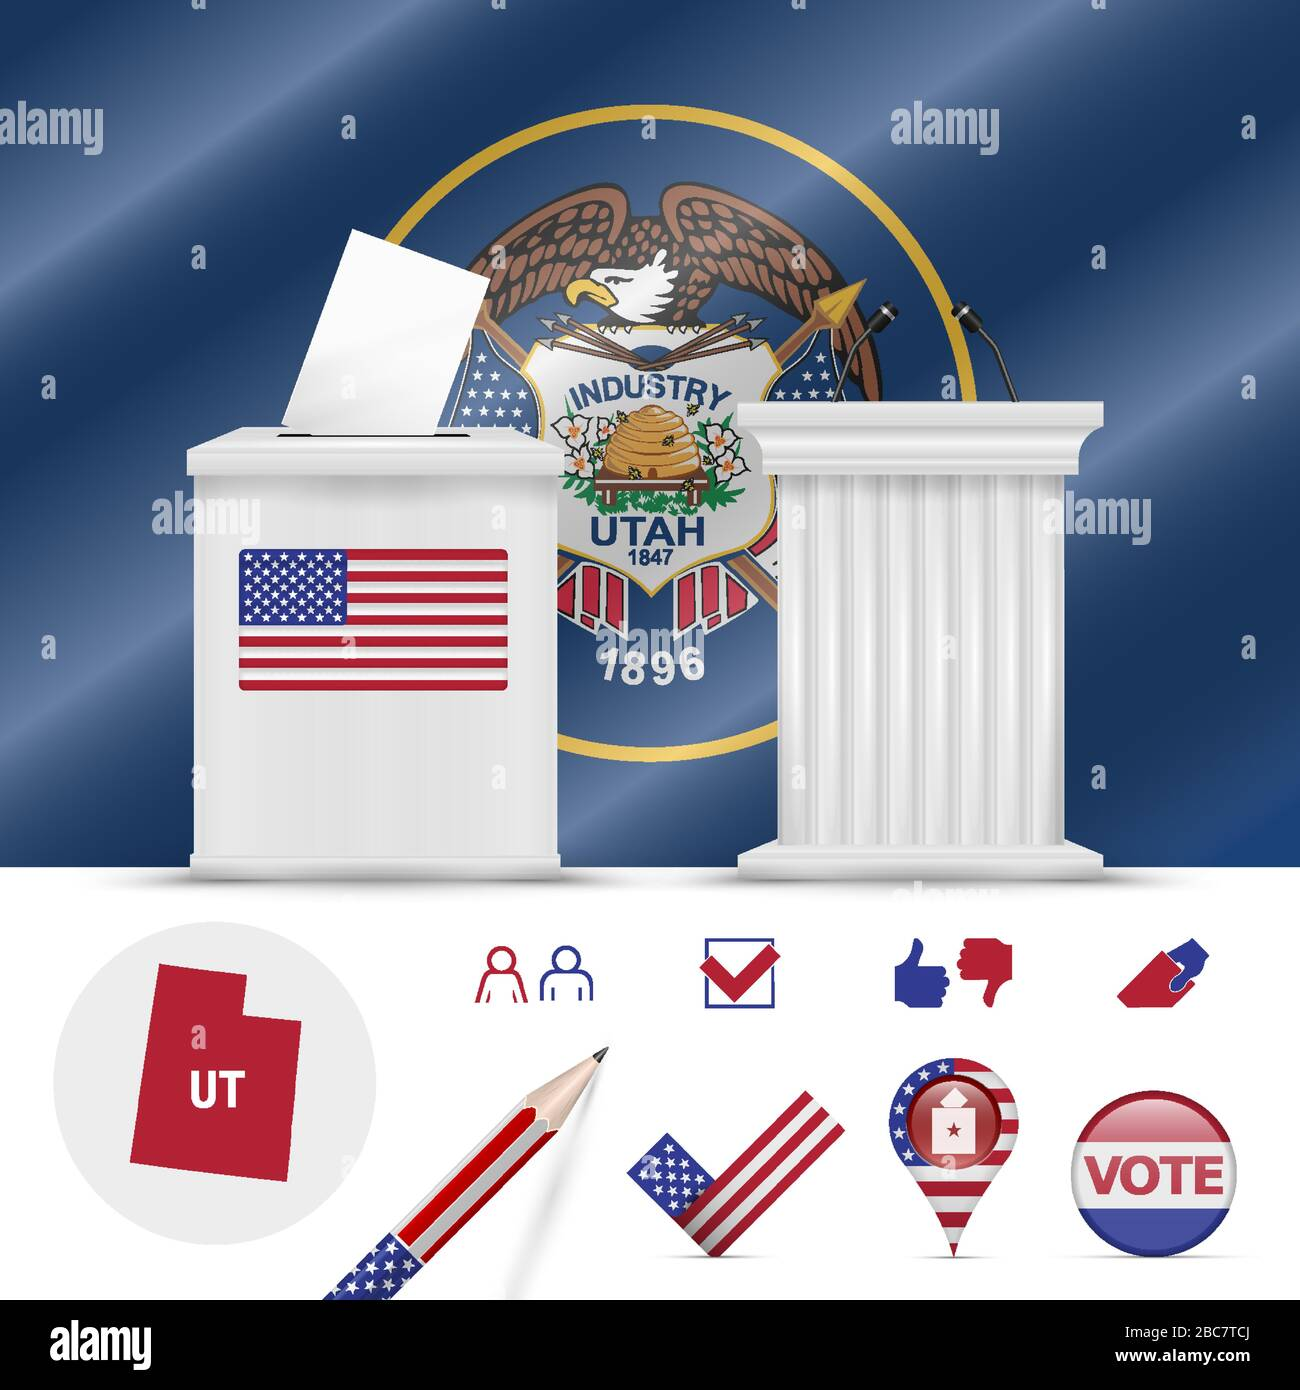 Presidential elections in Utah. Vector waving flag, realistic ballot box, public speaker's podium, silhouette map and voting icon set. Stock Vector